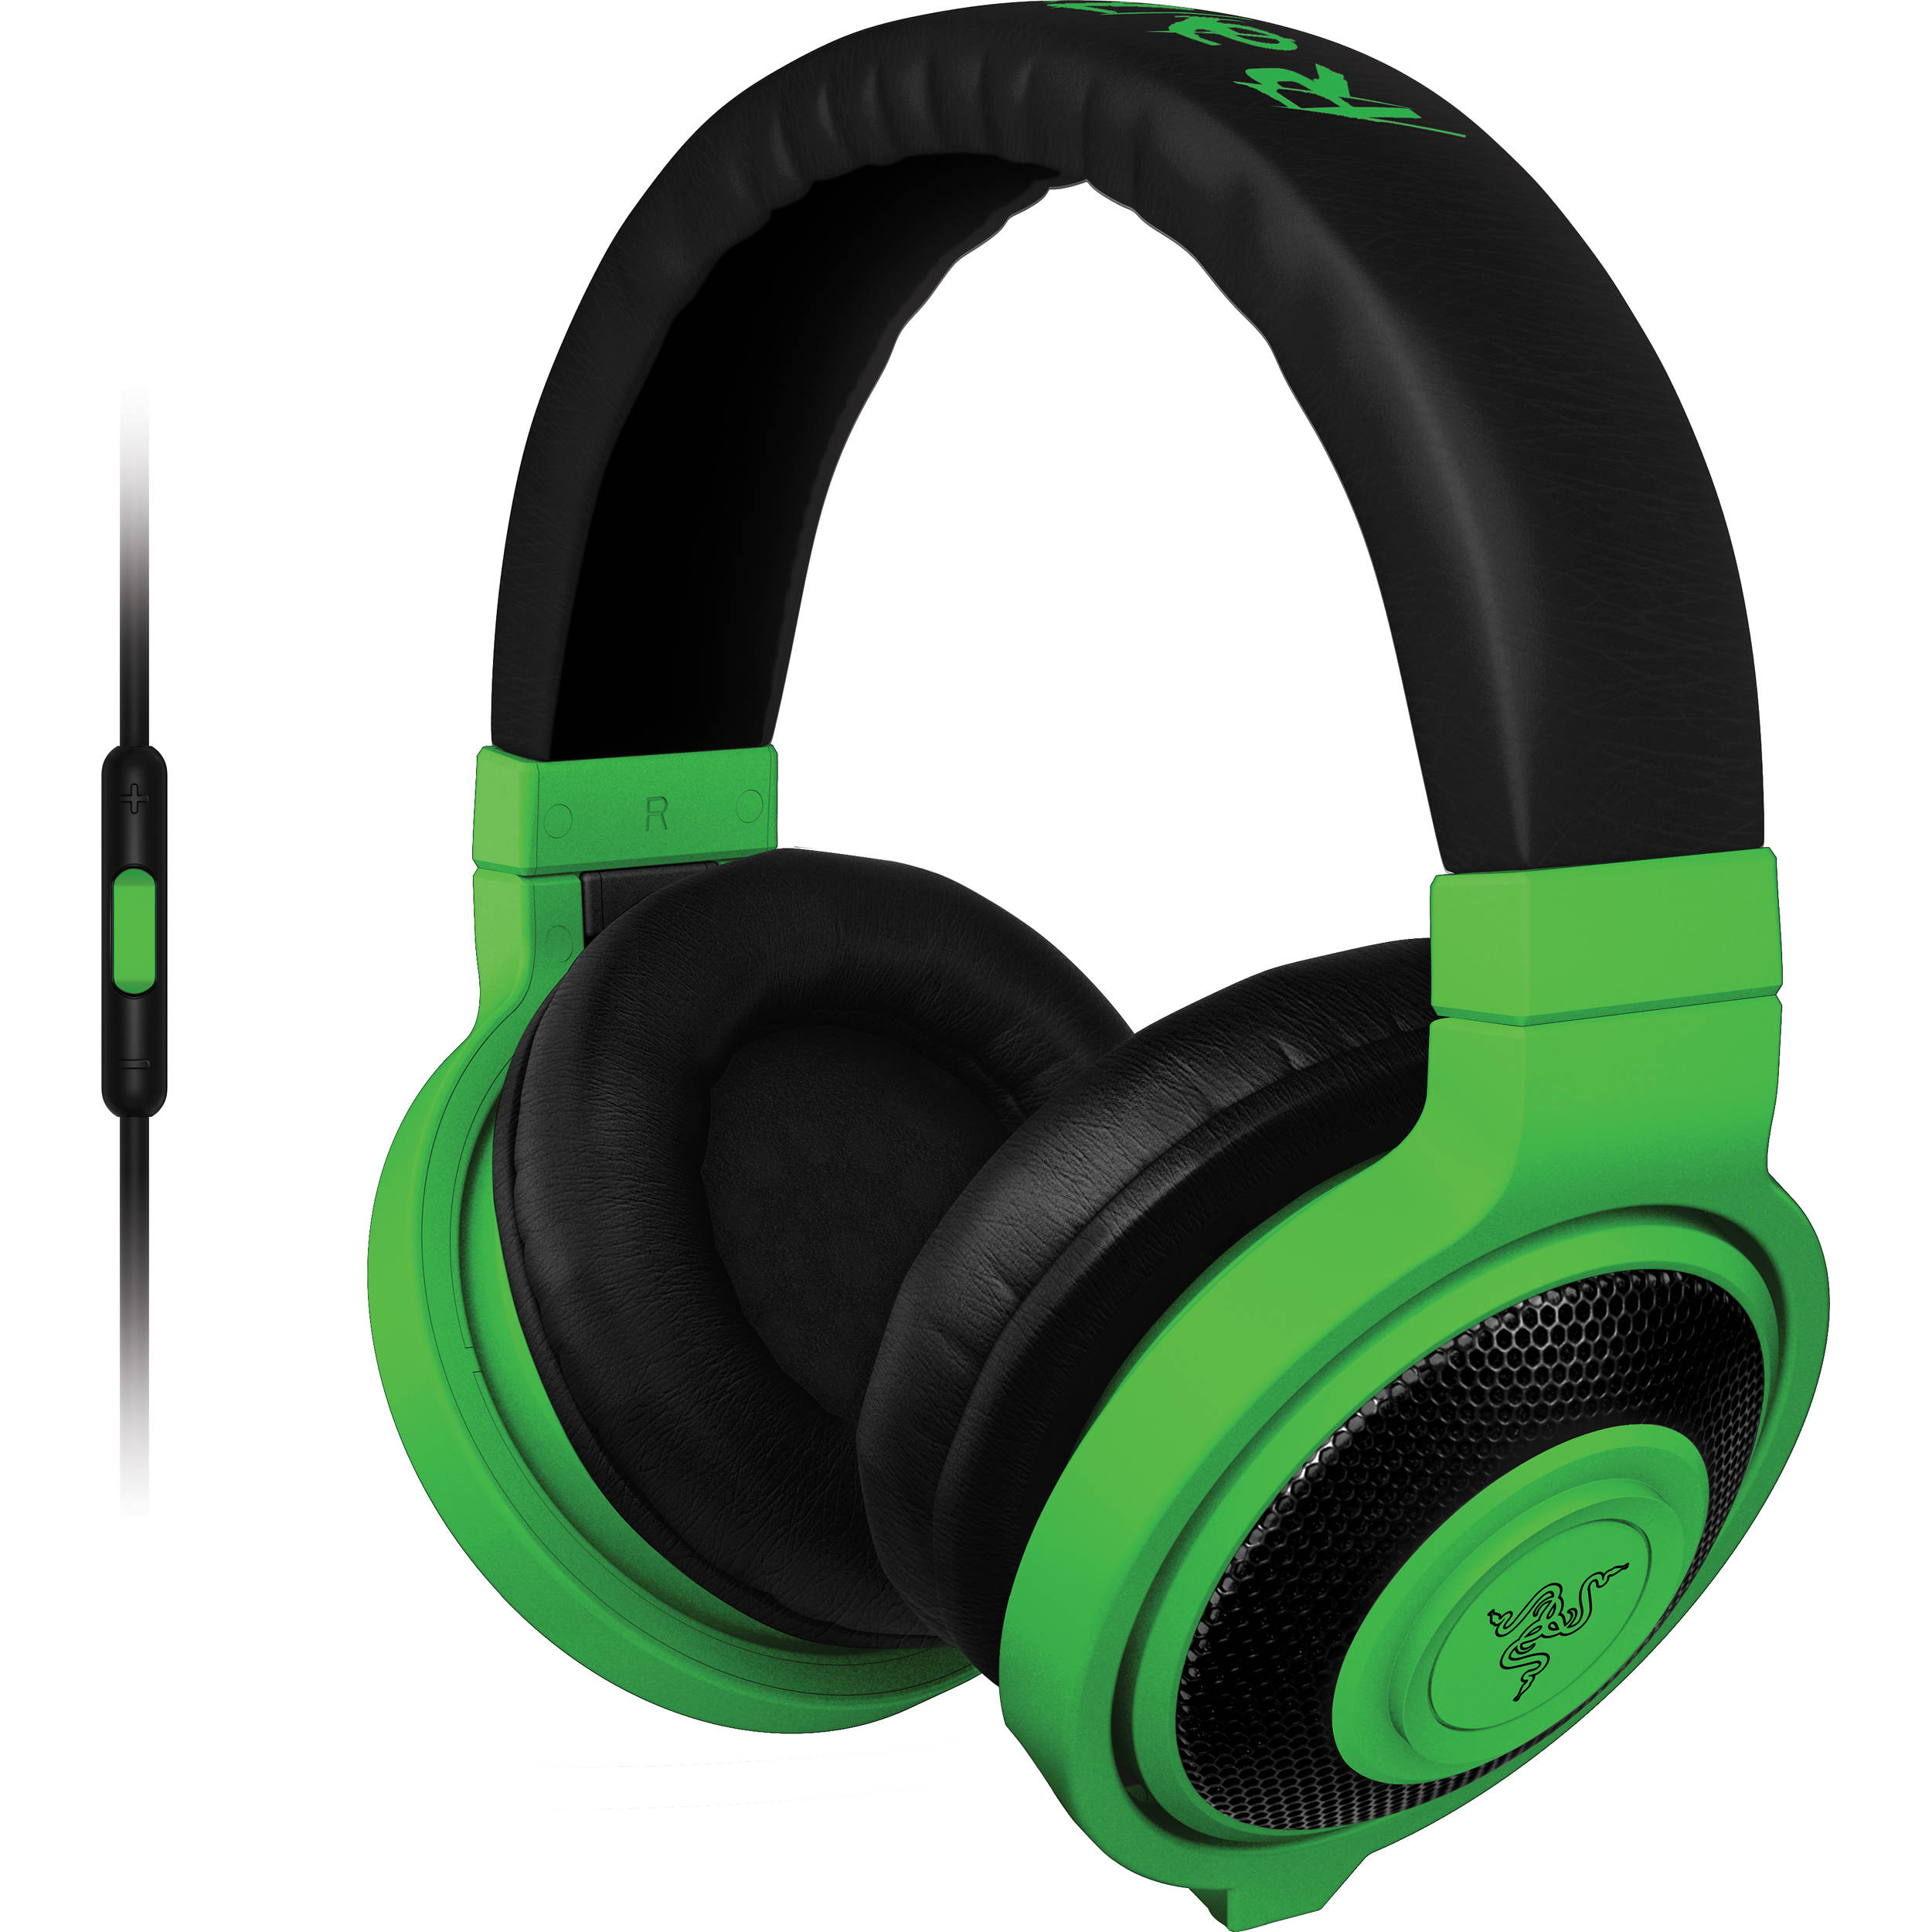 Razer Kraken Mobile Headphones (Neon Green) RZ04-01400100-R3U1